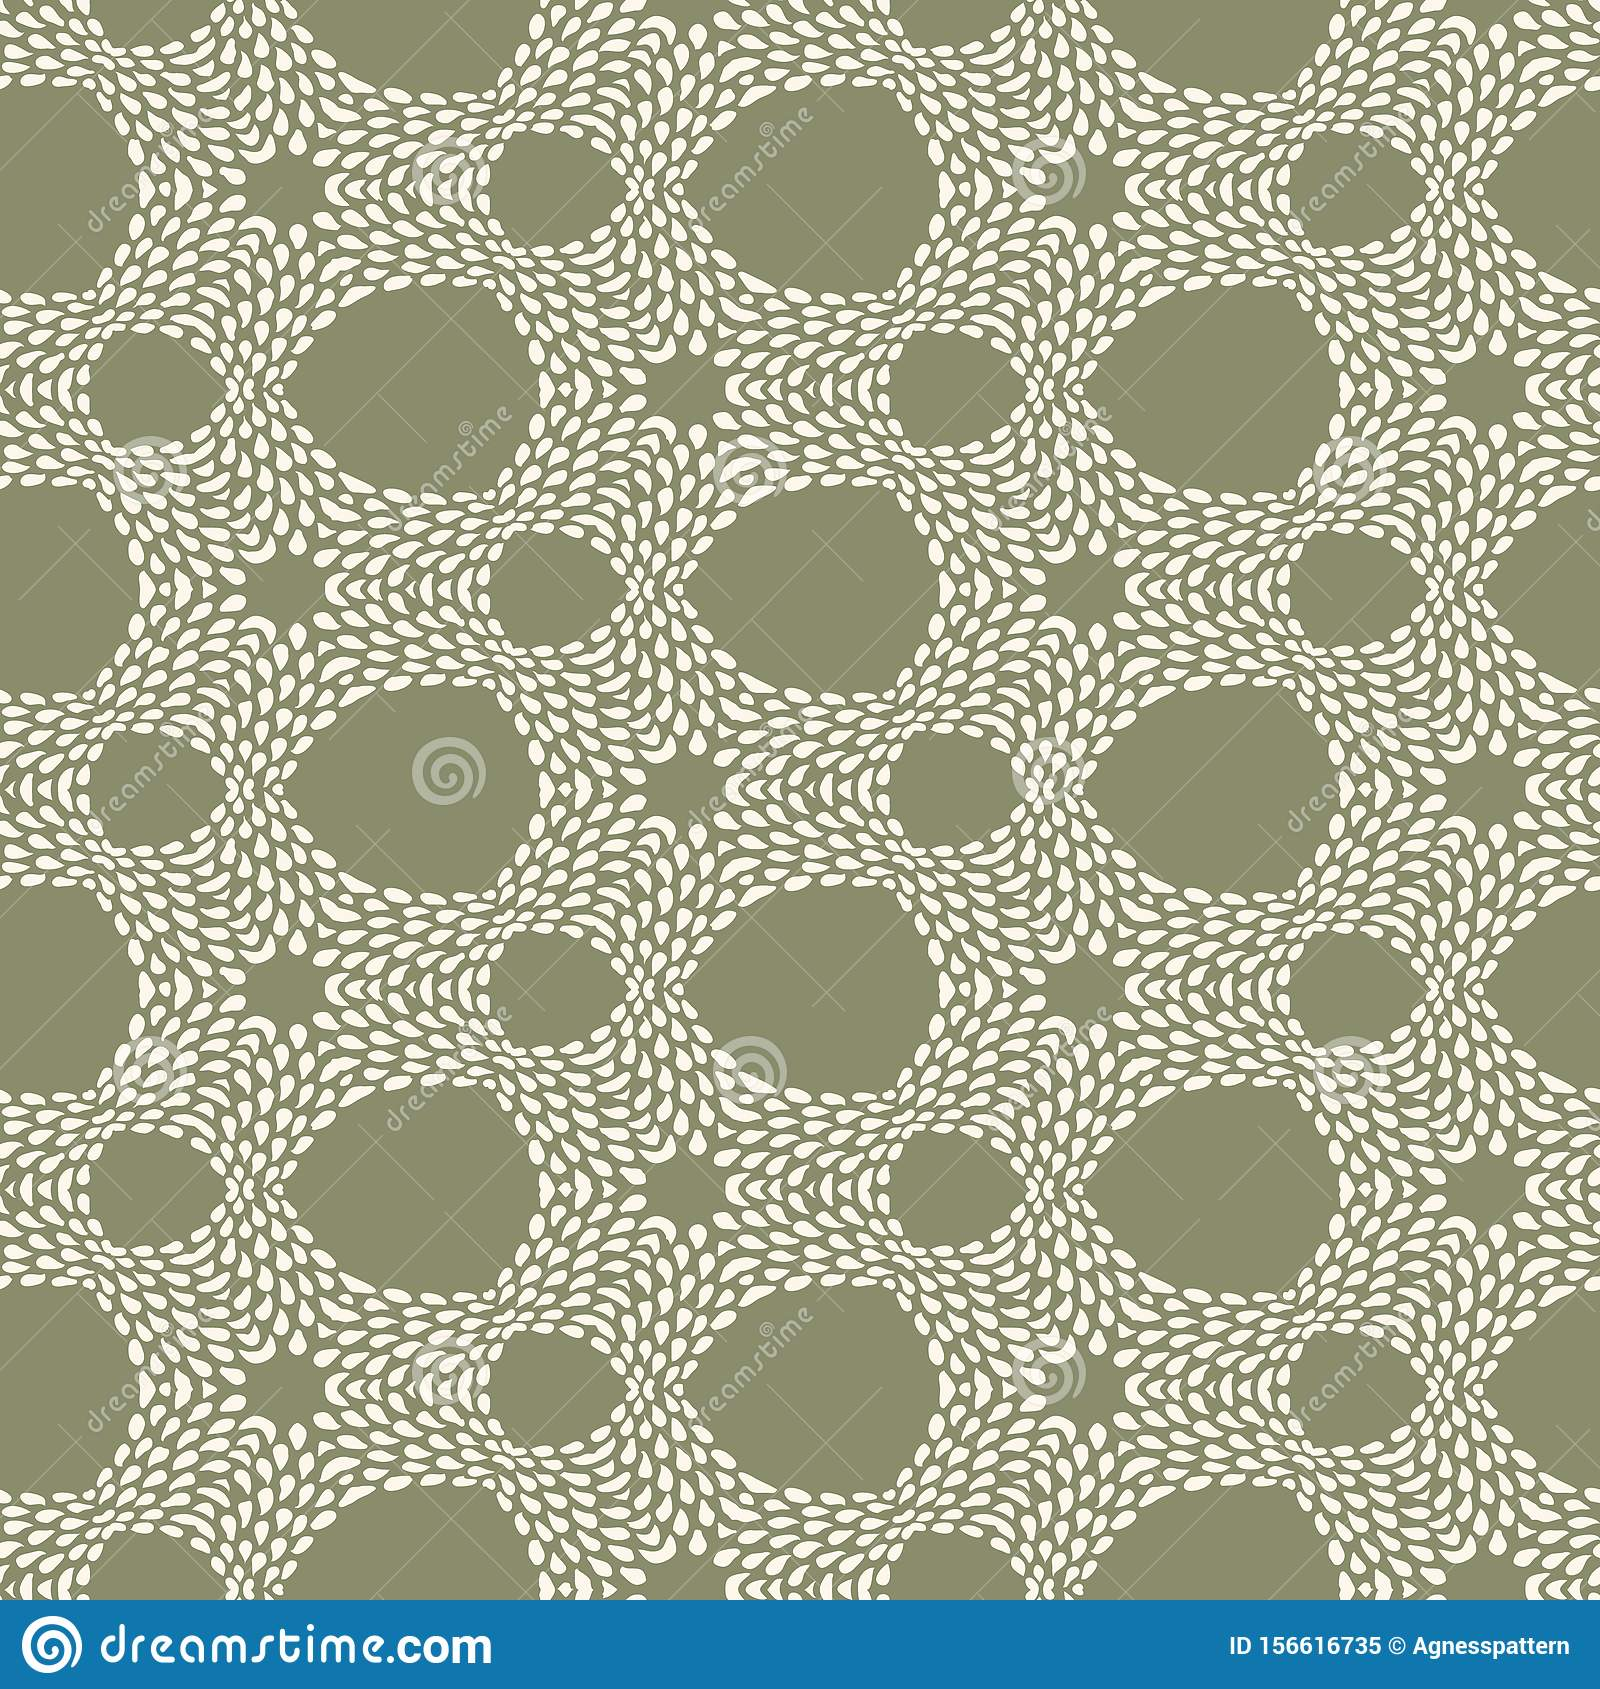 Vector Seamless Batik Pattern With Irregular Dots Texture